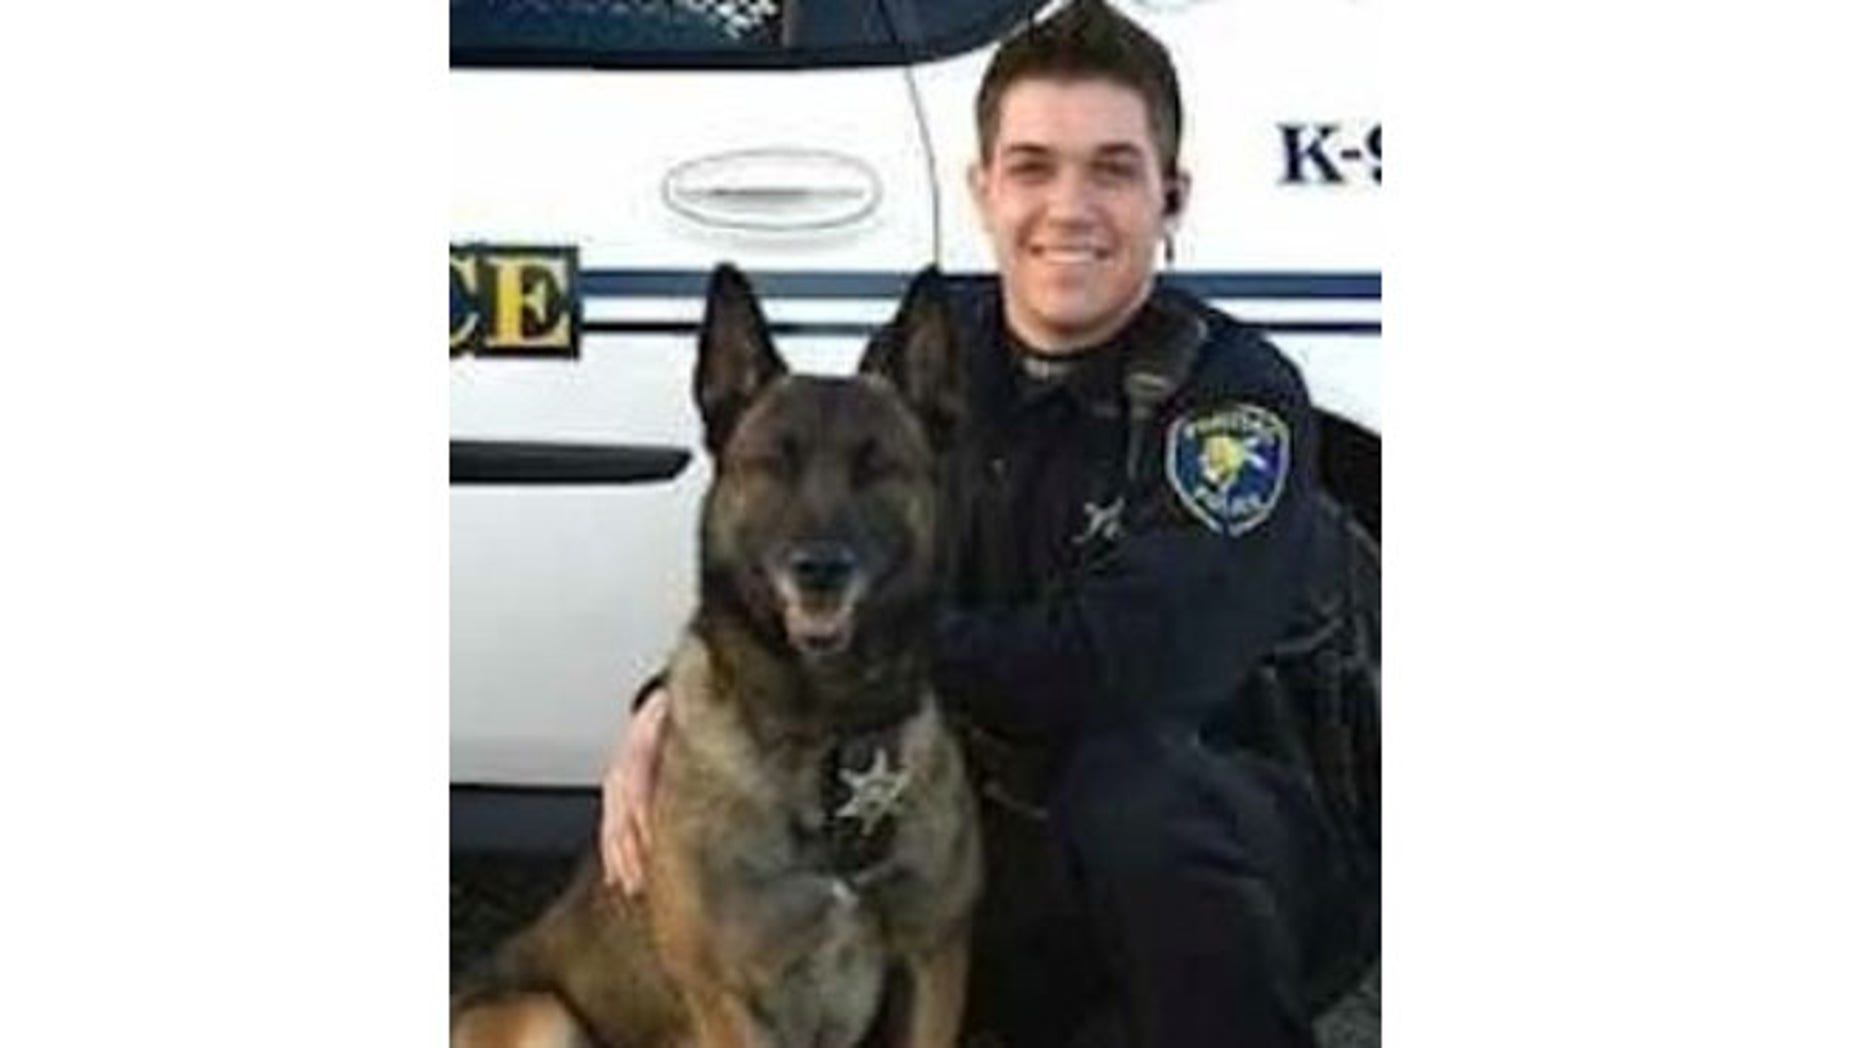 Pontiac police Officer Casey J. Kohlmeier and his K-9 partner Draco were killed in a car accident.